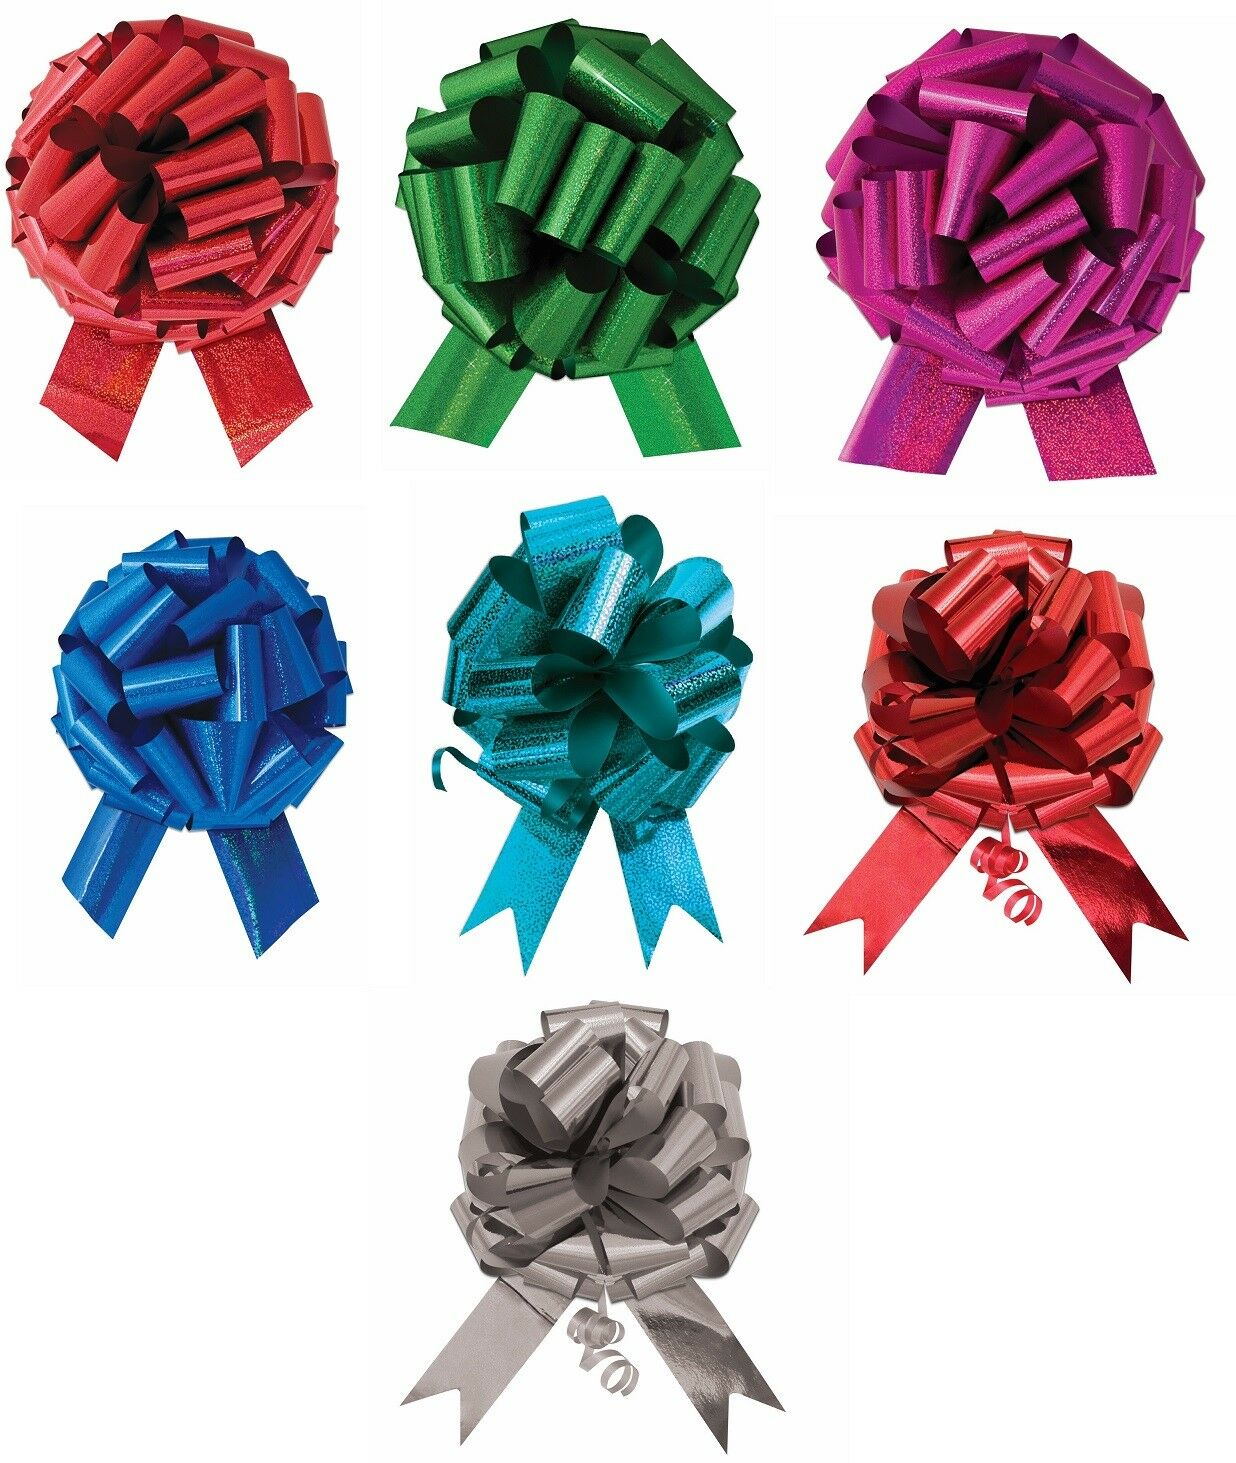 How to make a paper Bow/Ribbon | Easy origami Bow/Ribbons for ... | 1463x1236